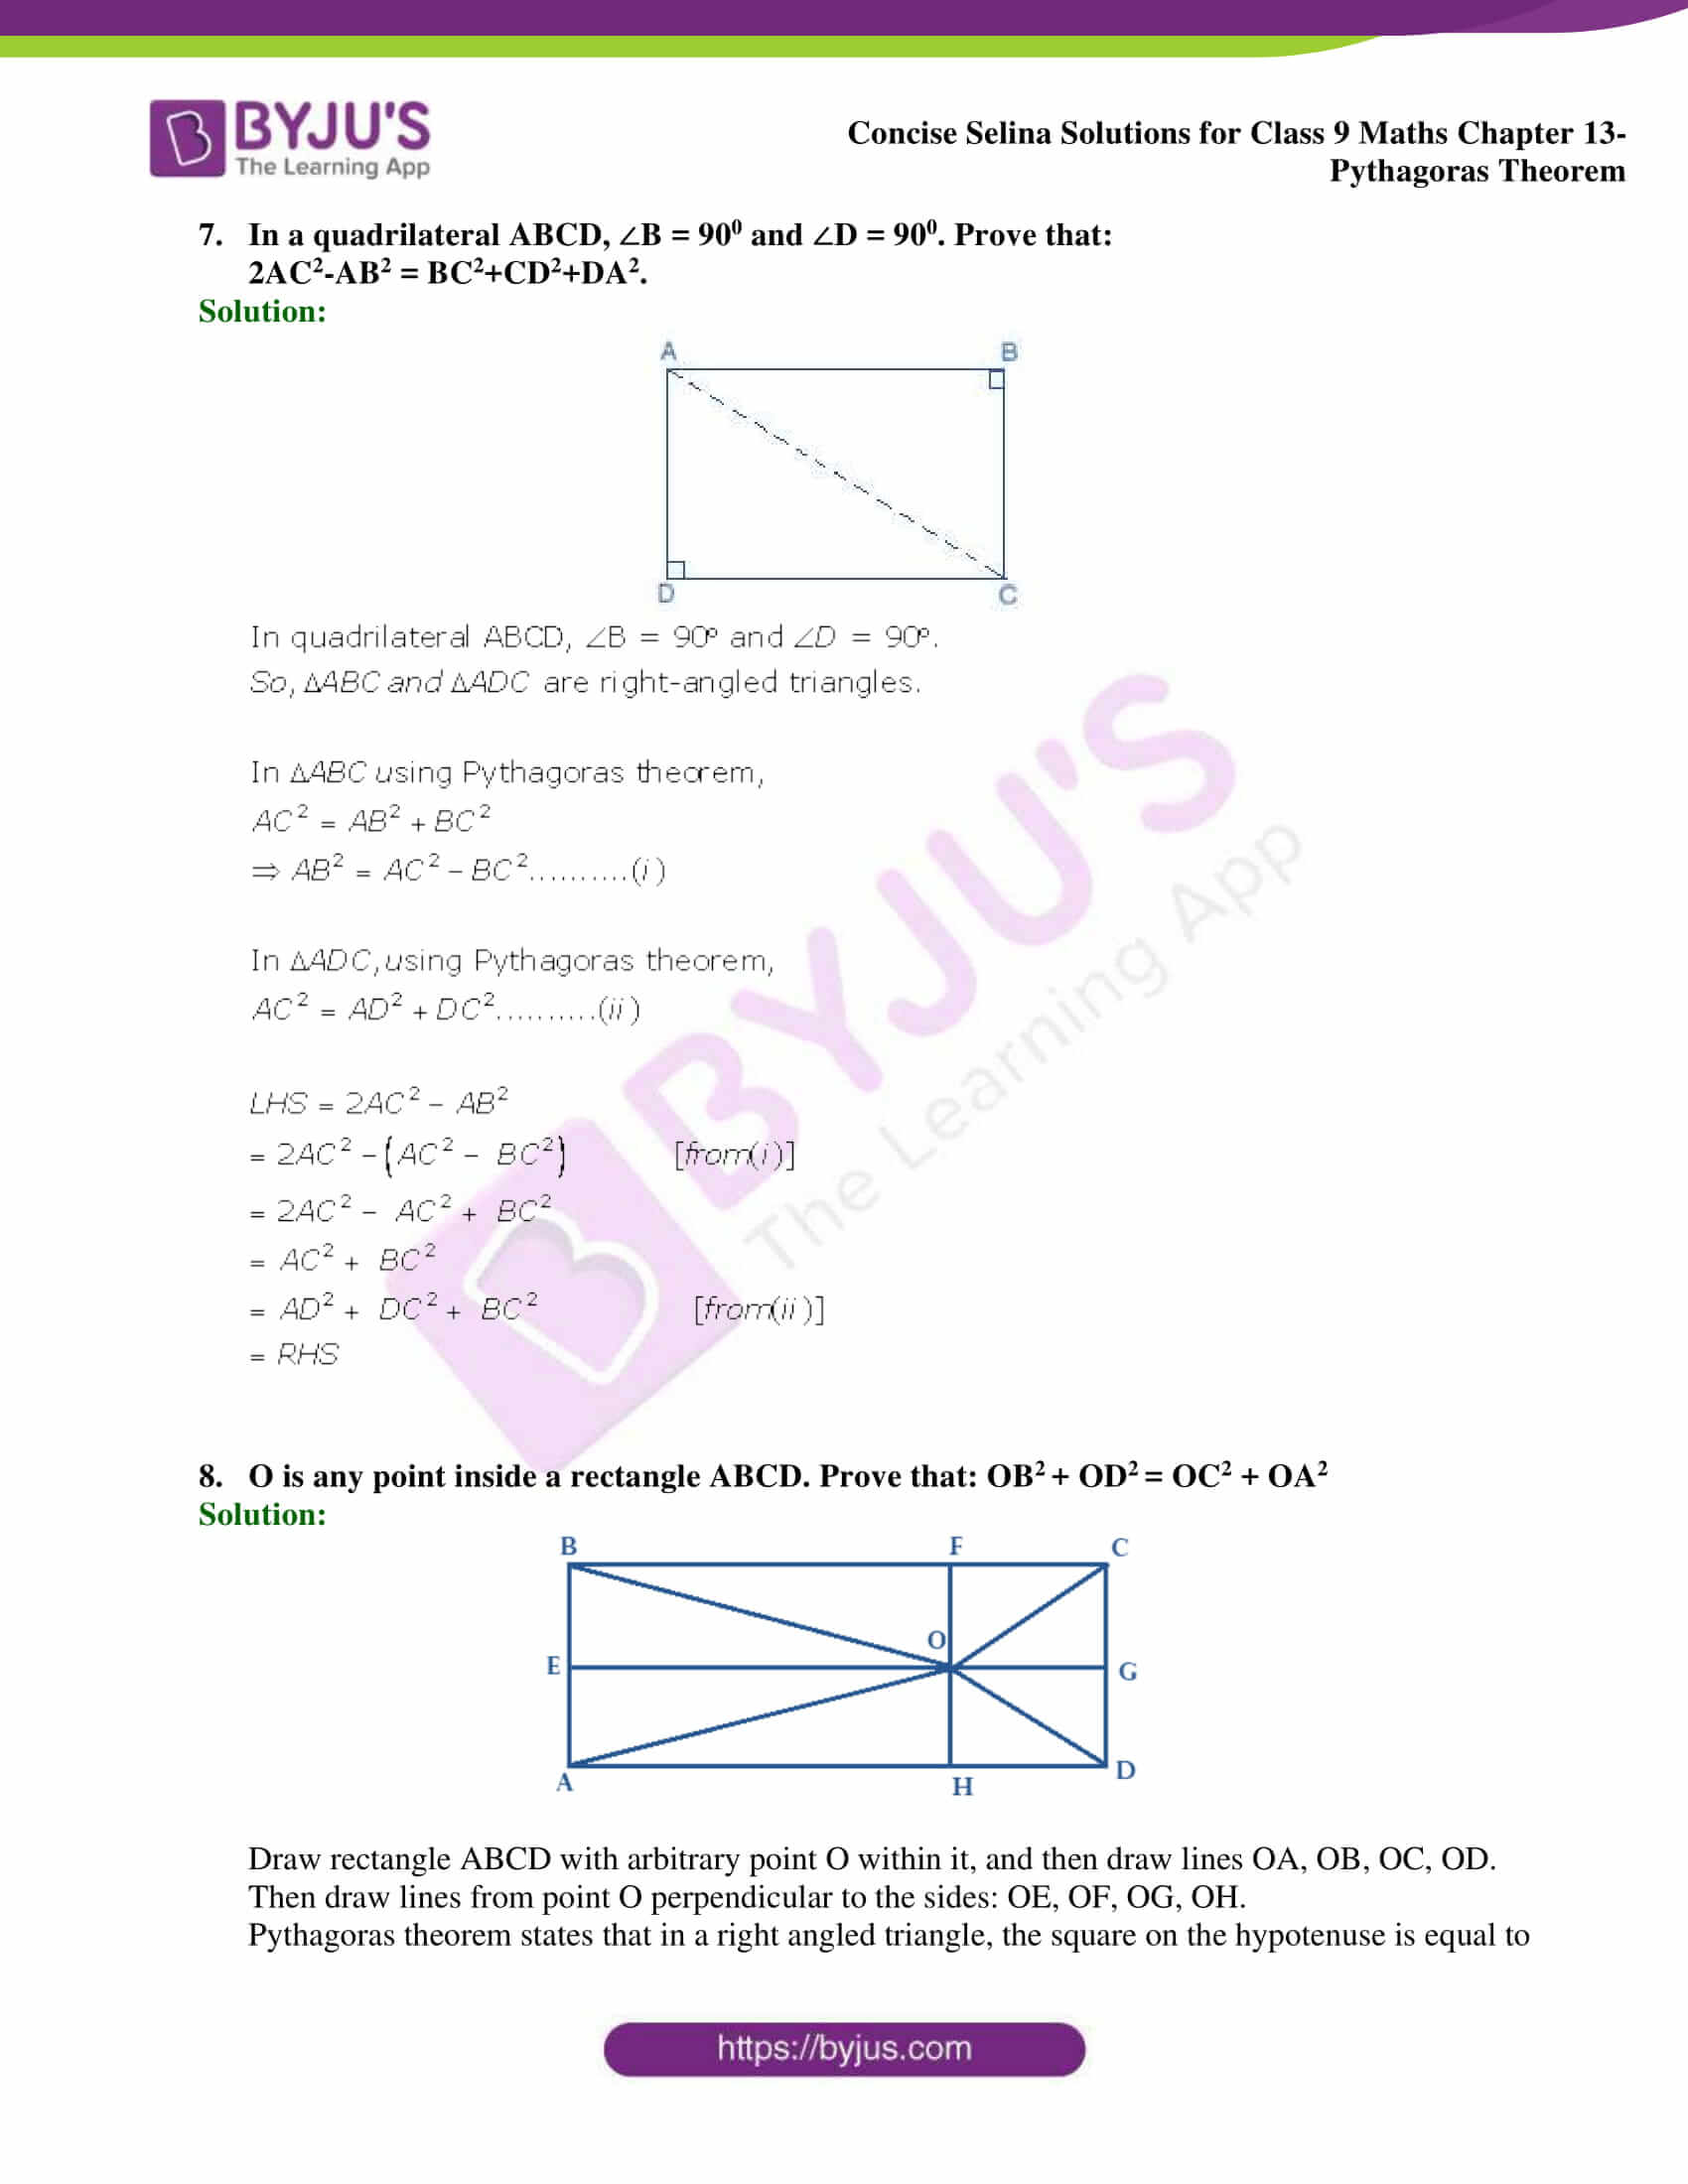 selina Solutions for Class 9 Maths Chapter 13 part 16